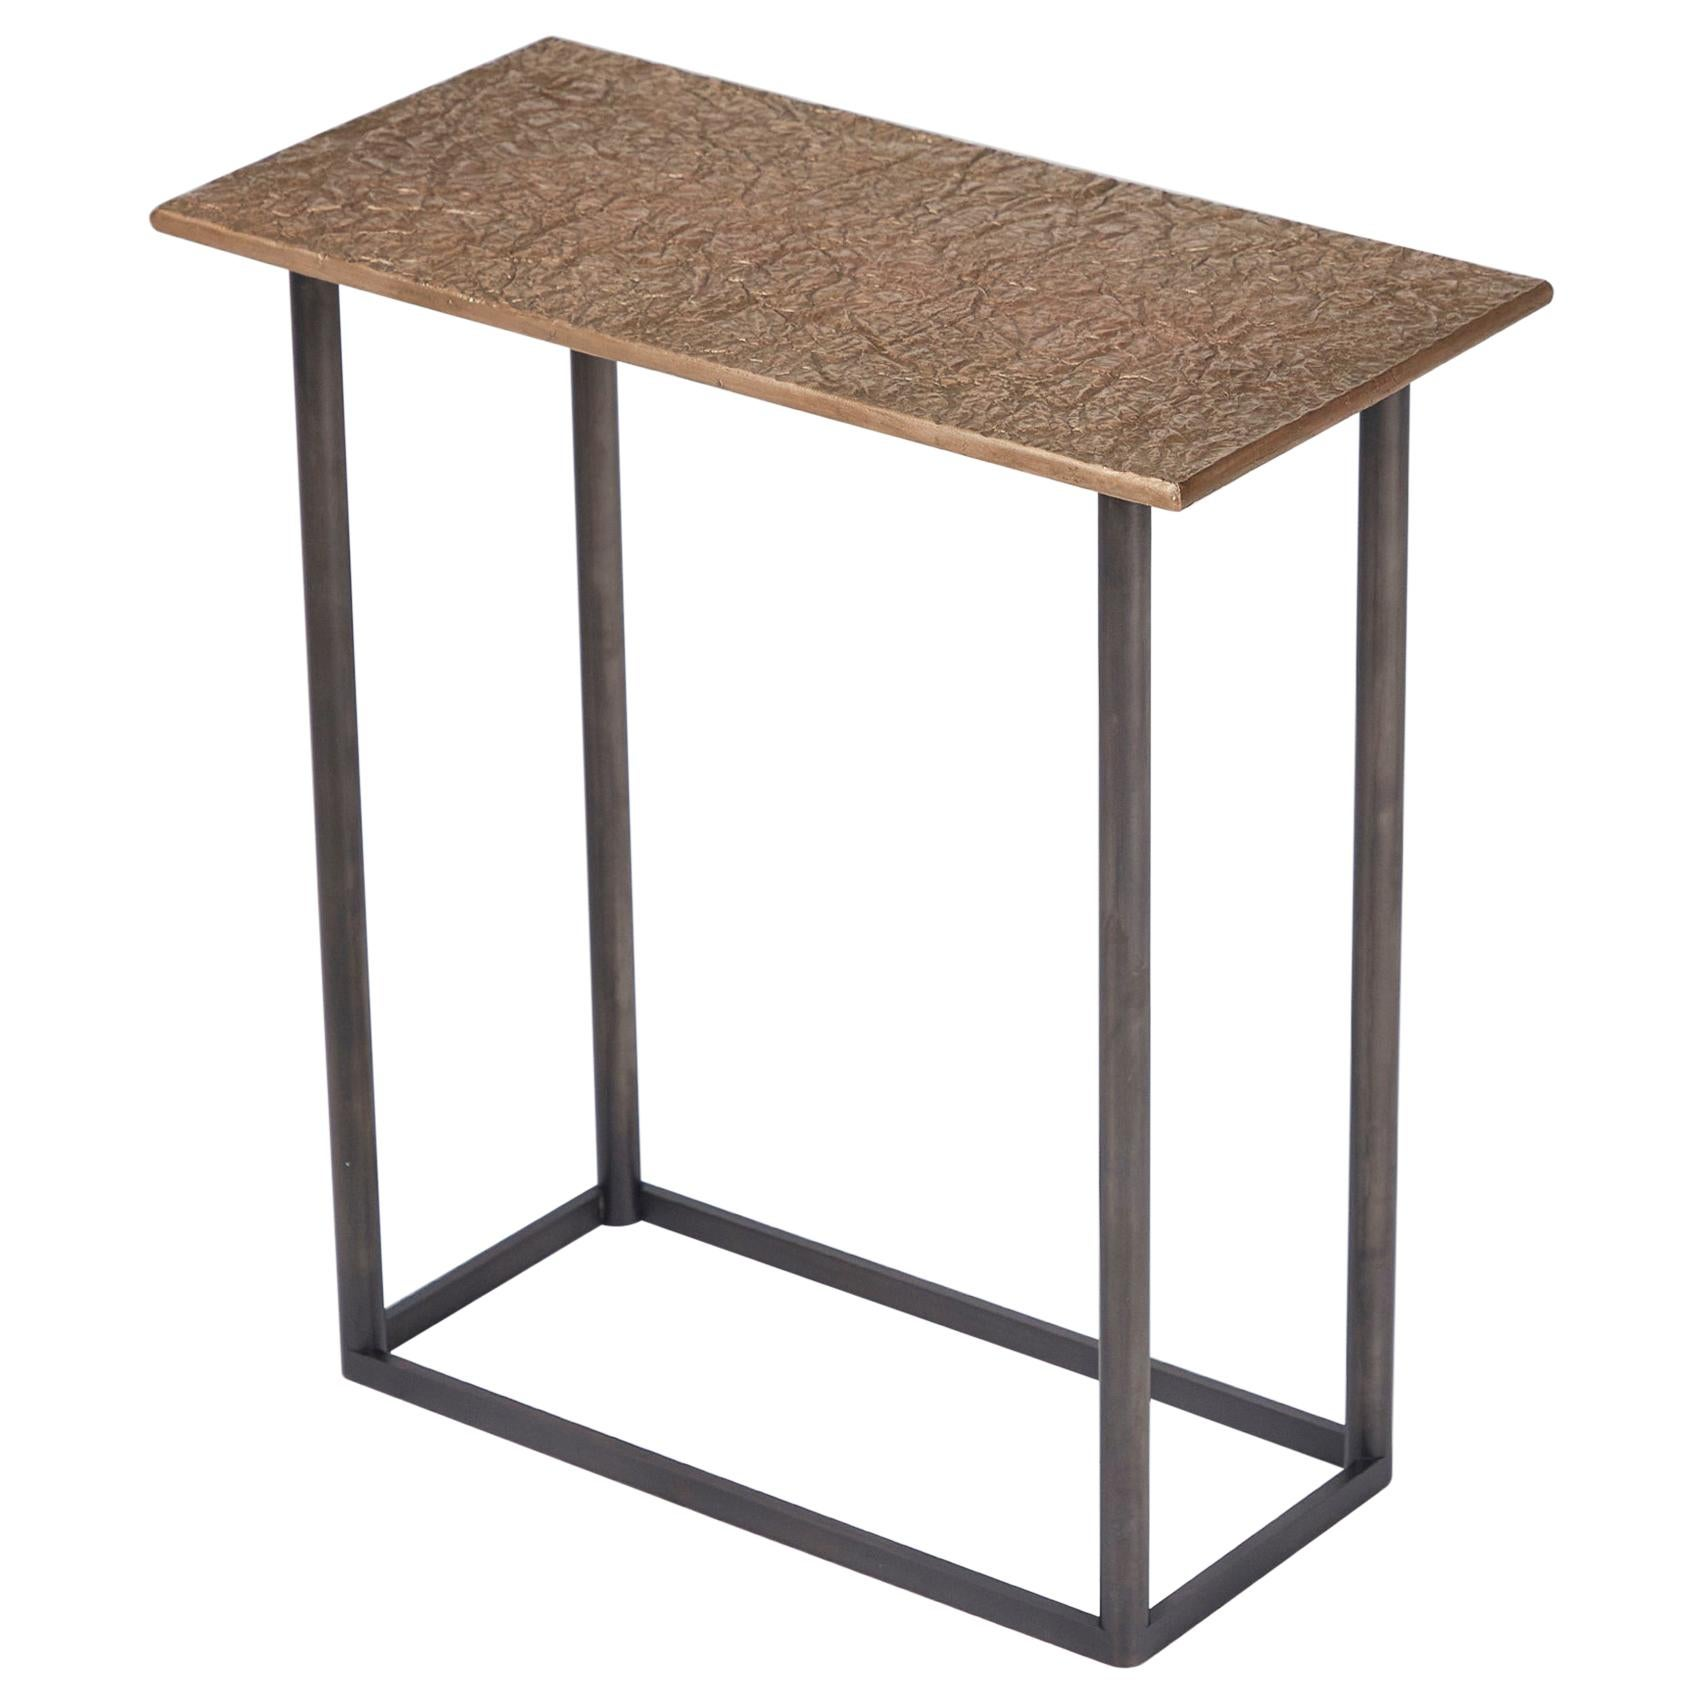 Douglas Fanning, Geometry Series, Rectangle #1, Cocktail Table, US, 2020